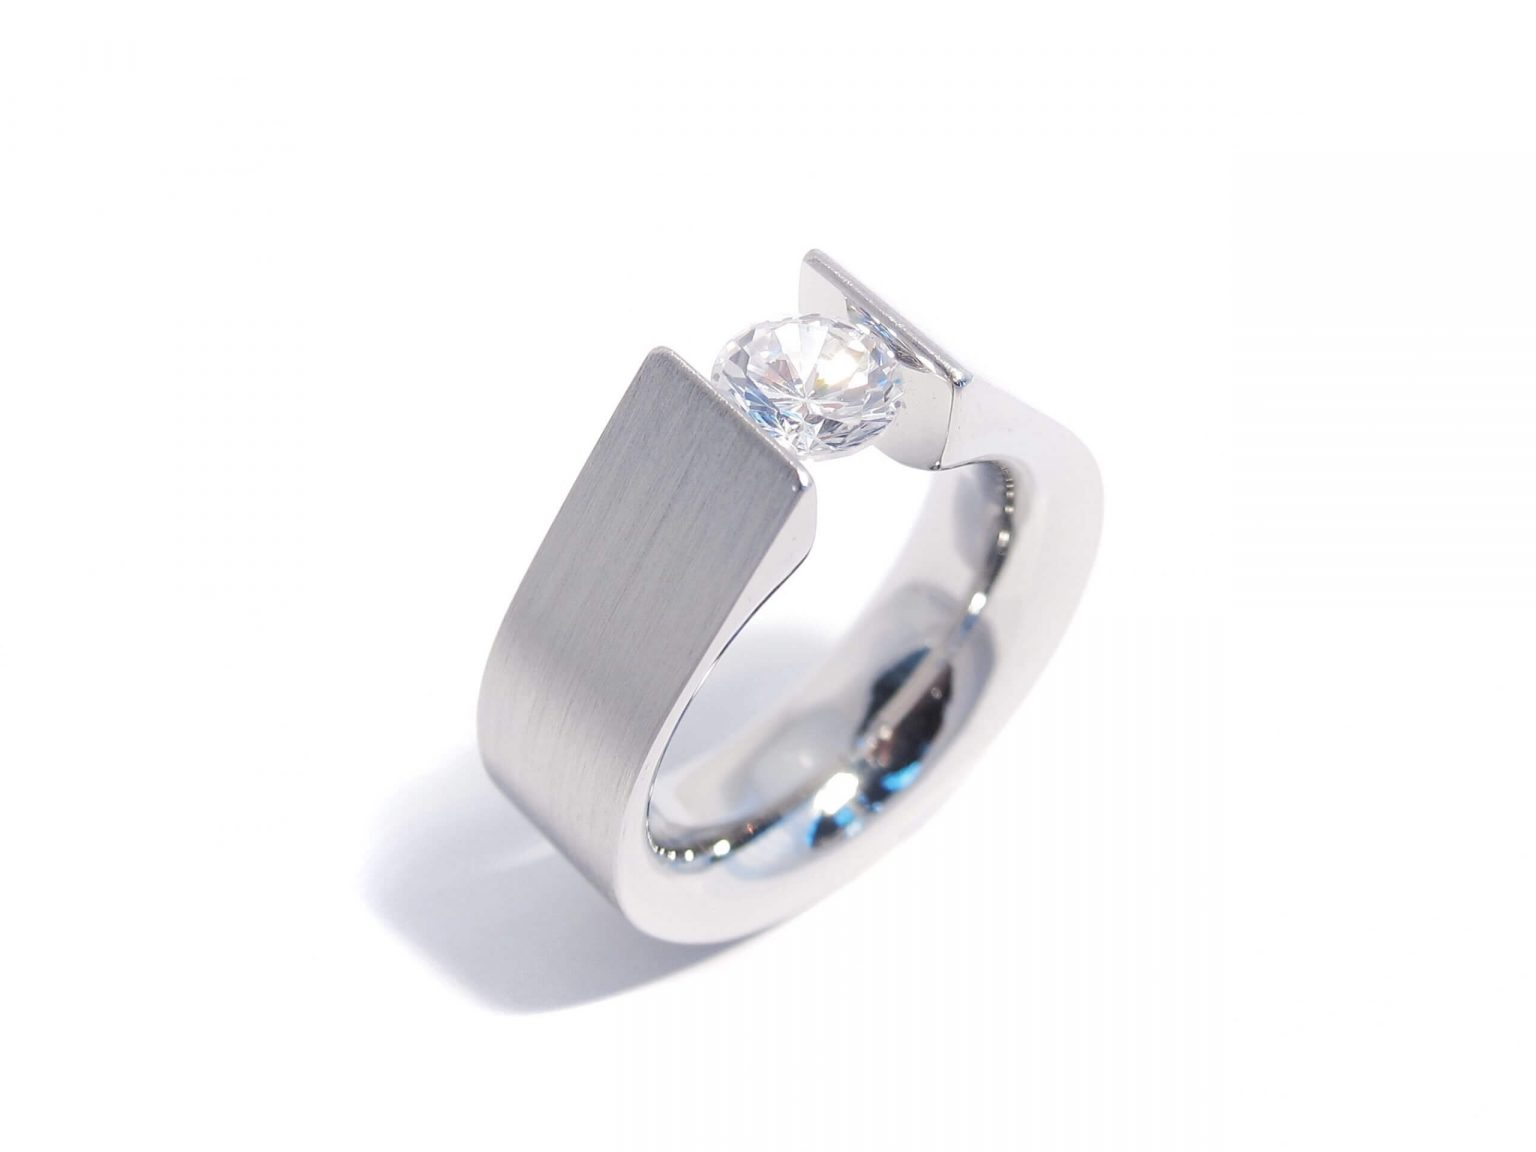 steel and diamond tension ring